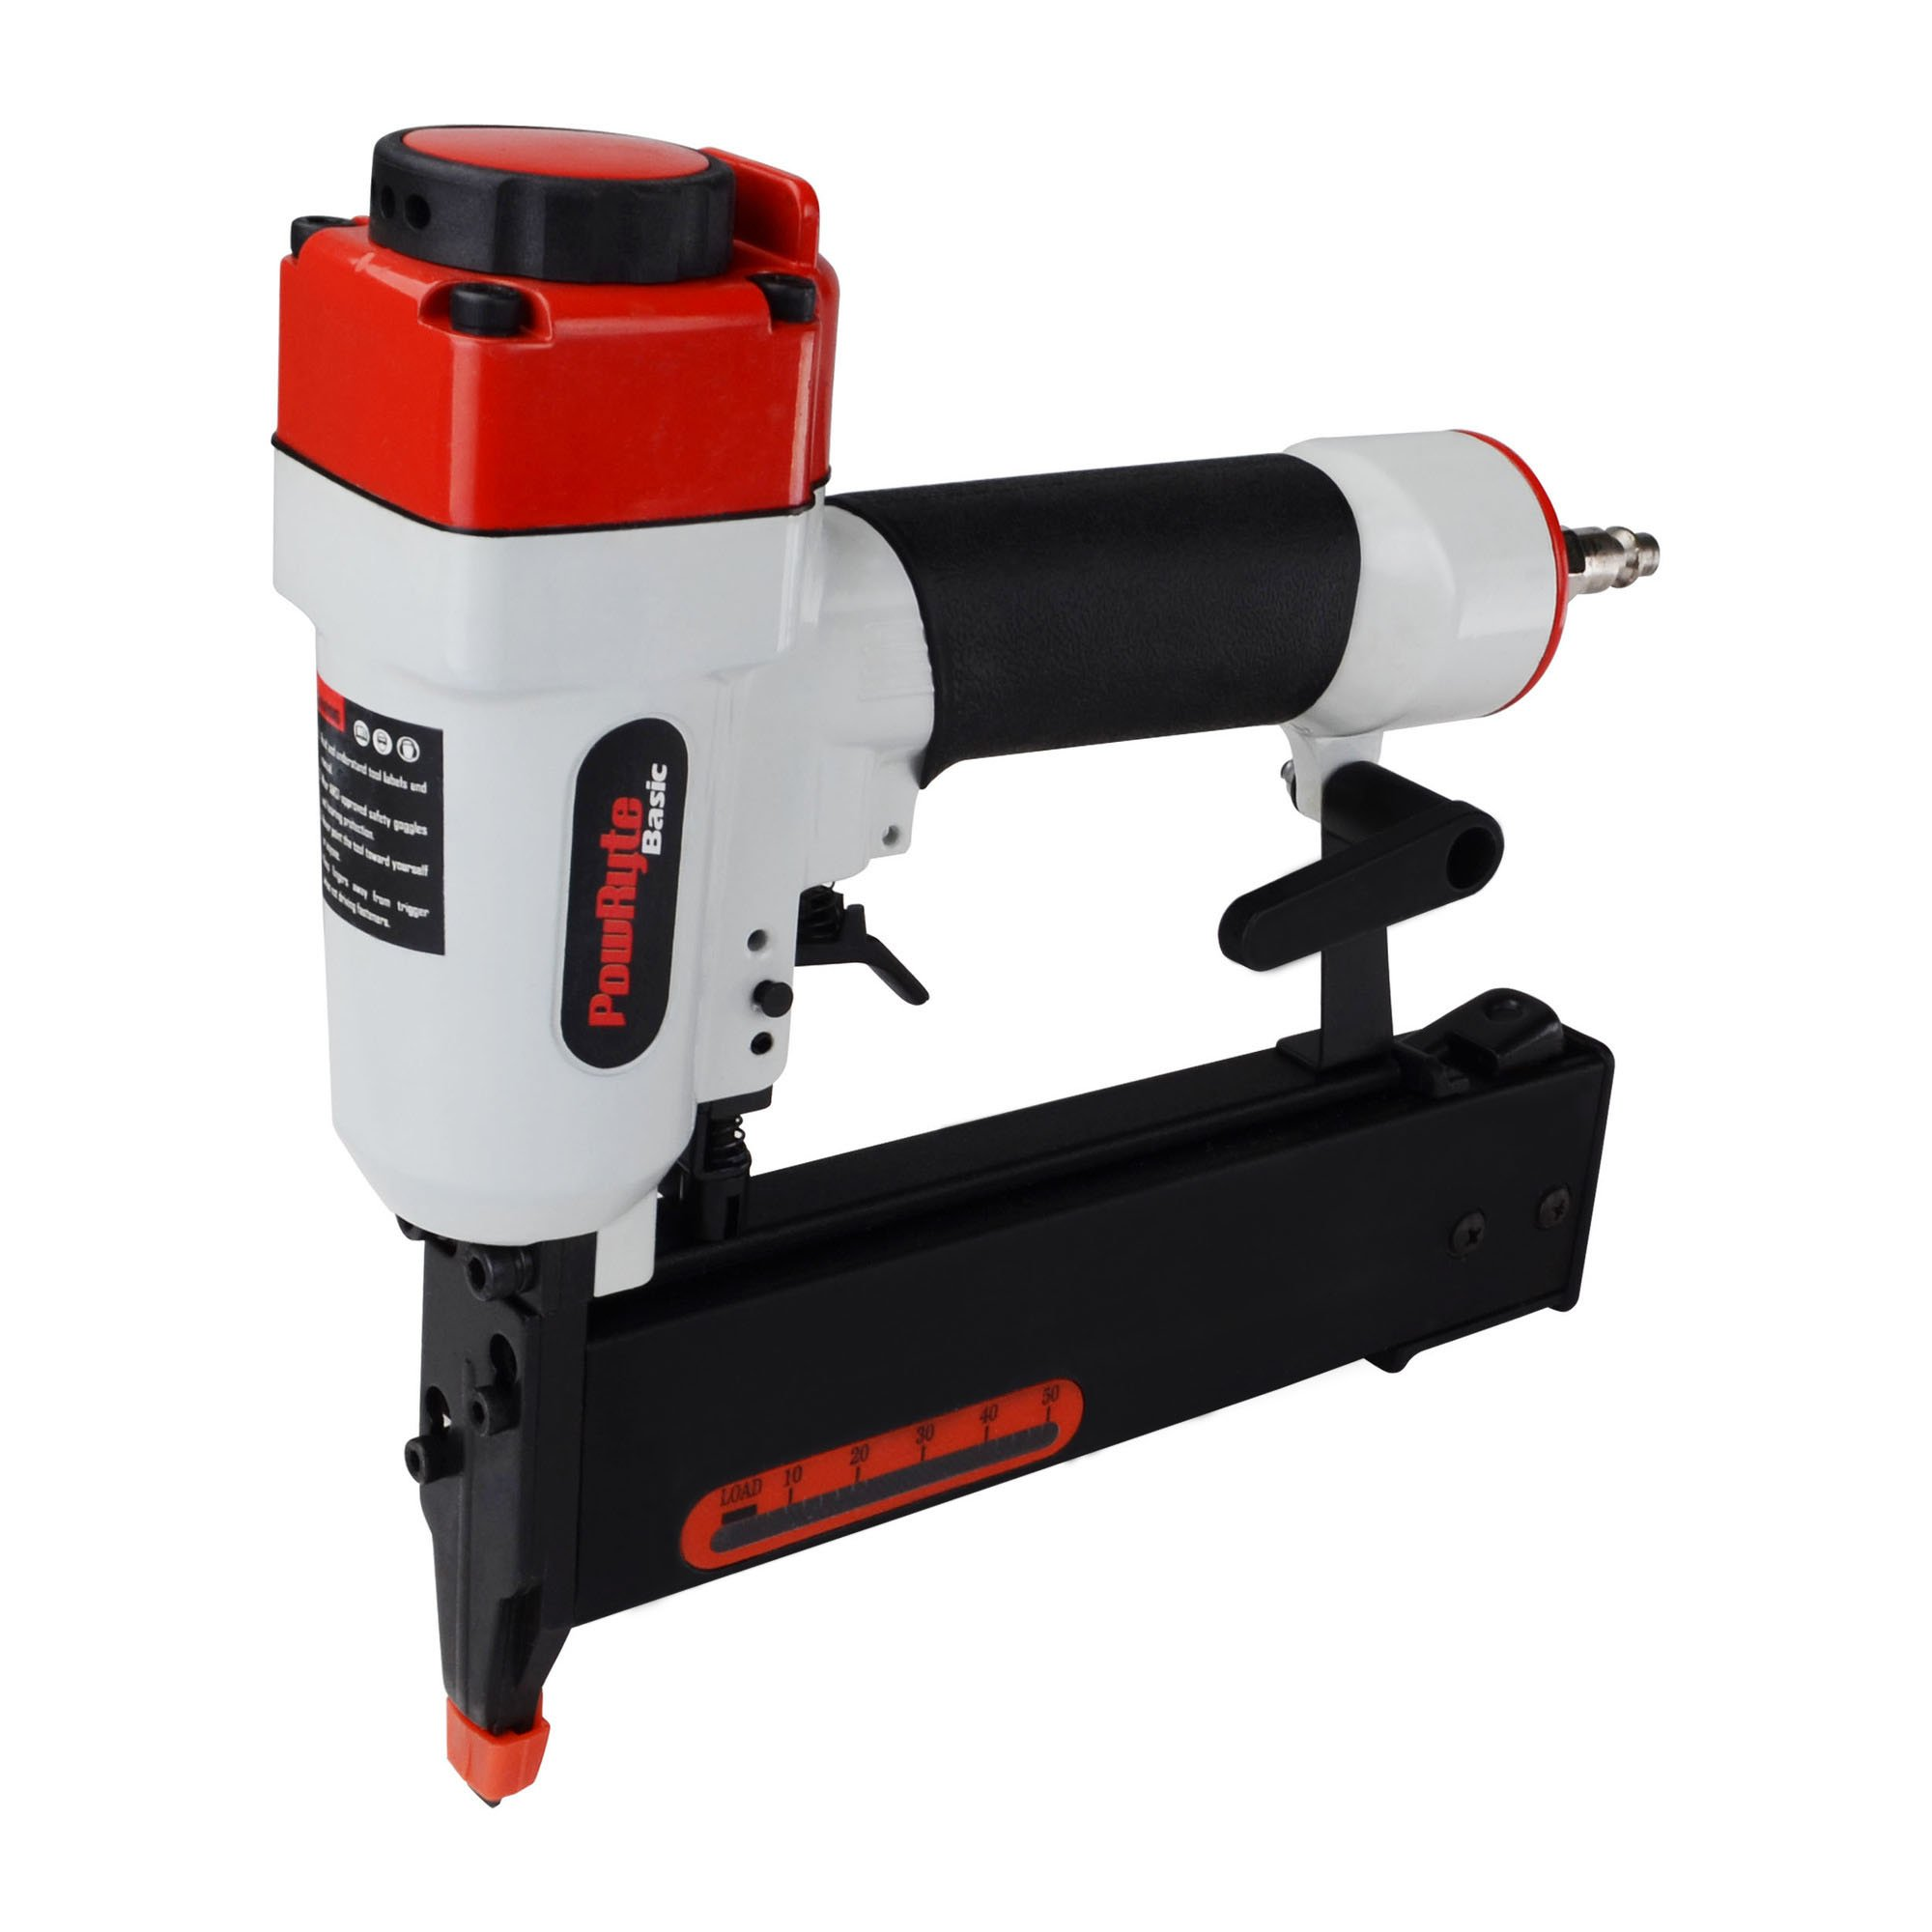 PowRyte 16 Gauge Straight Air Finish Nailer - 3/4-Inch to 2-Inch by PowRyte (Image #1)